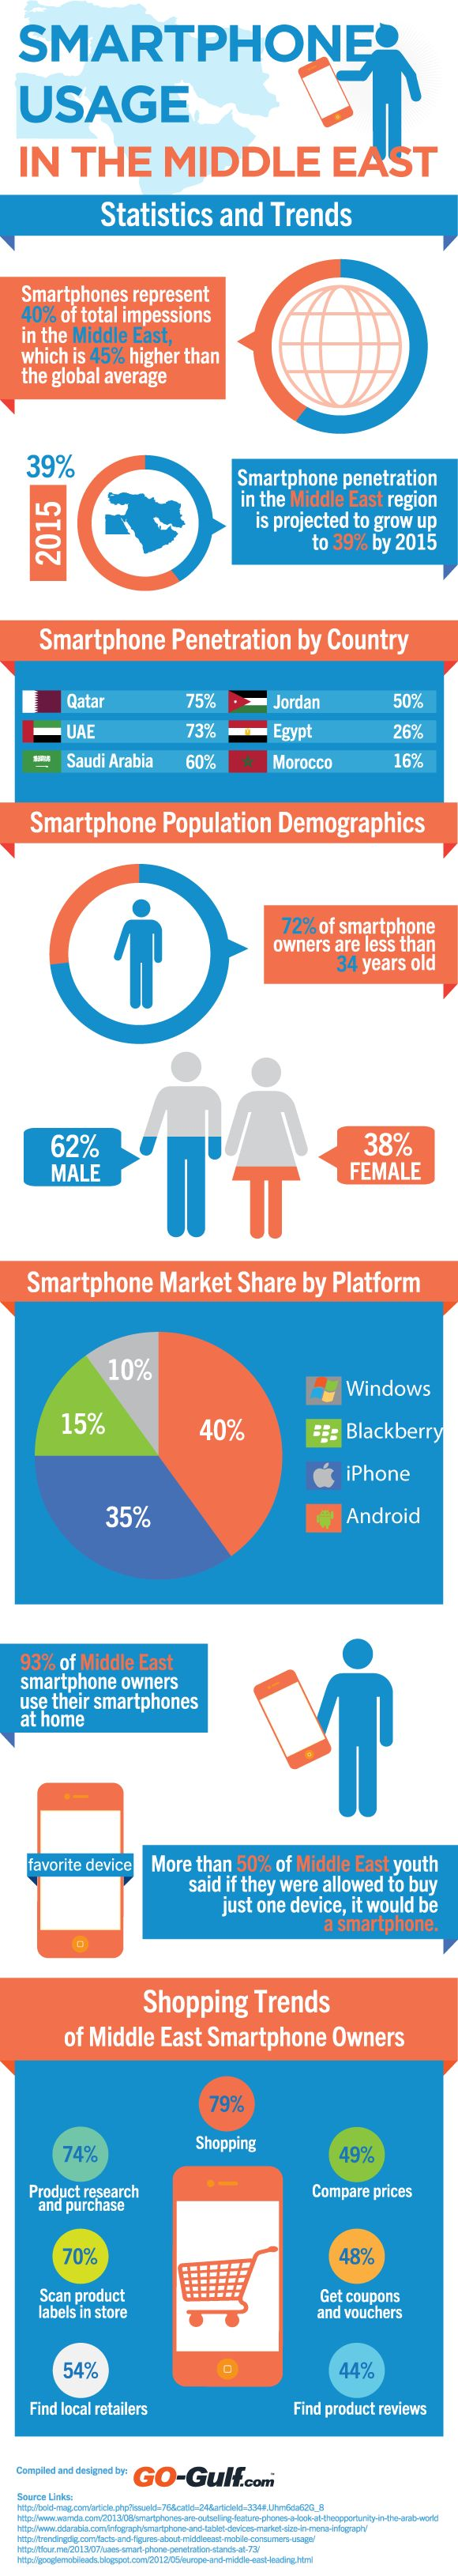 Middle East Smartphone Usage Trends {Go-Gulf.com}